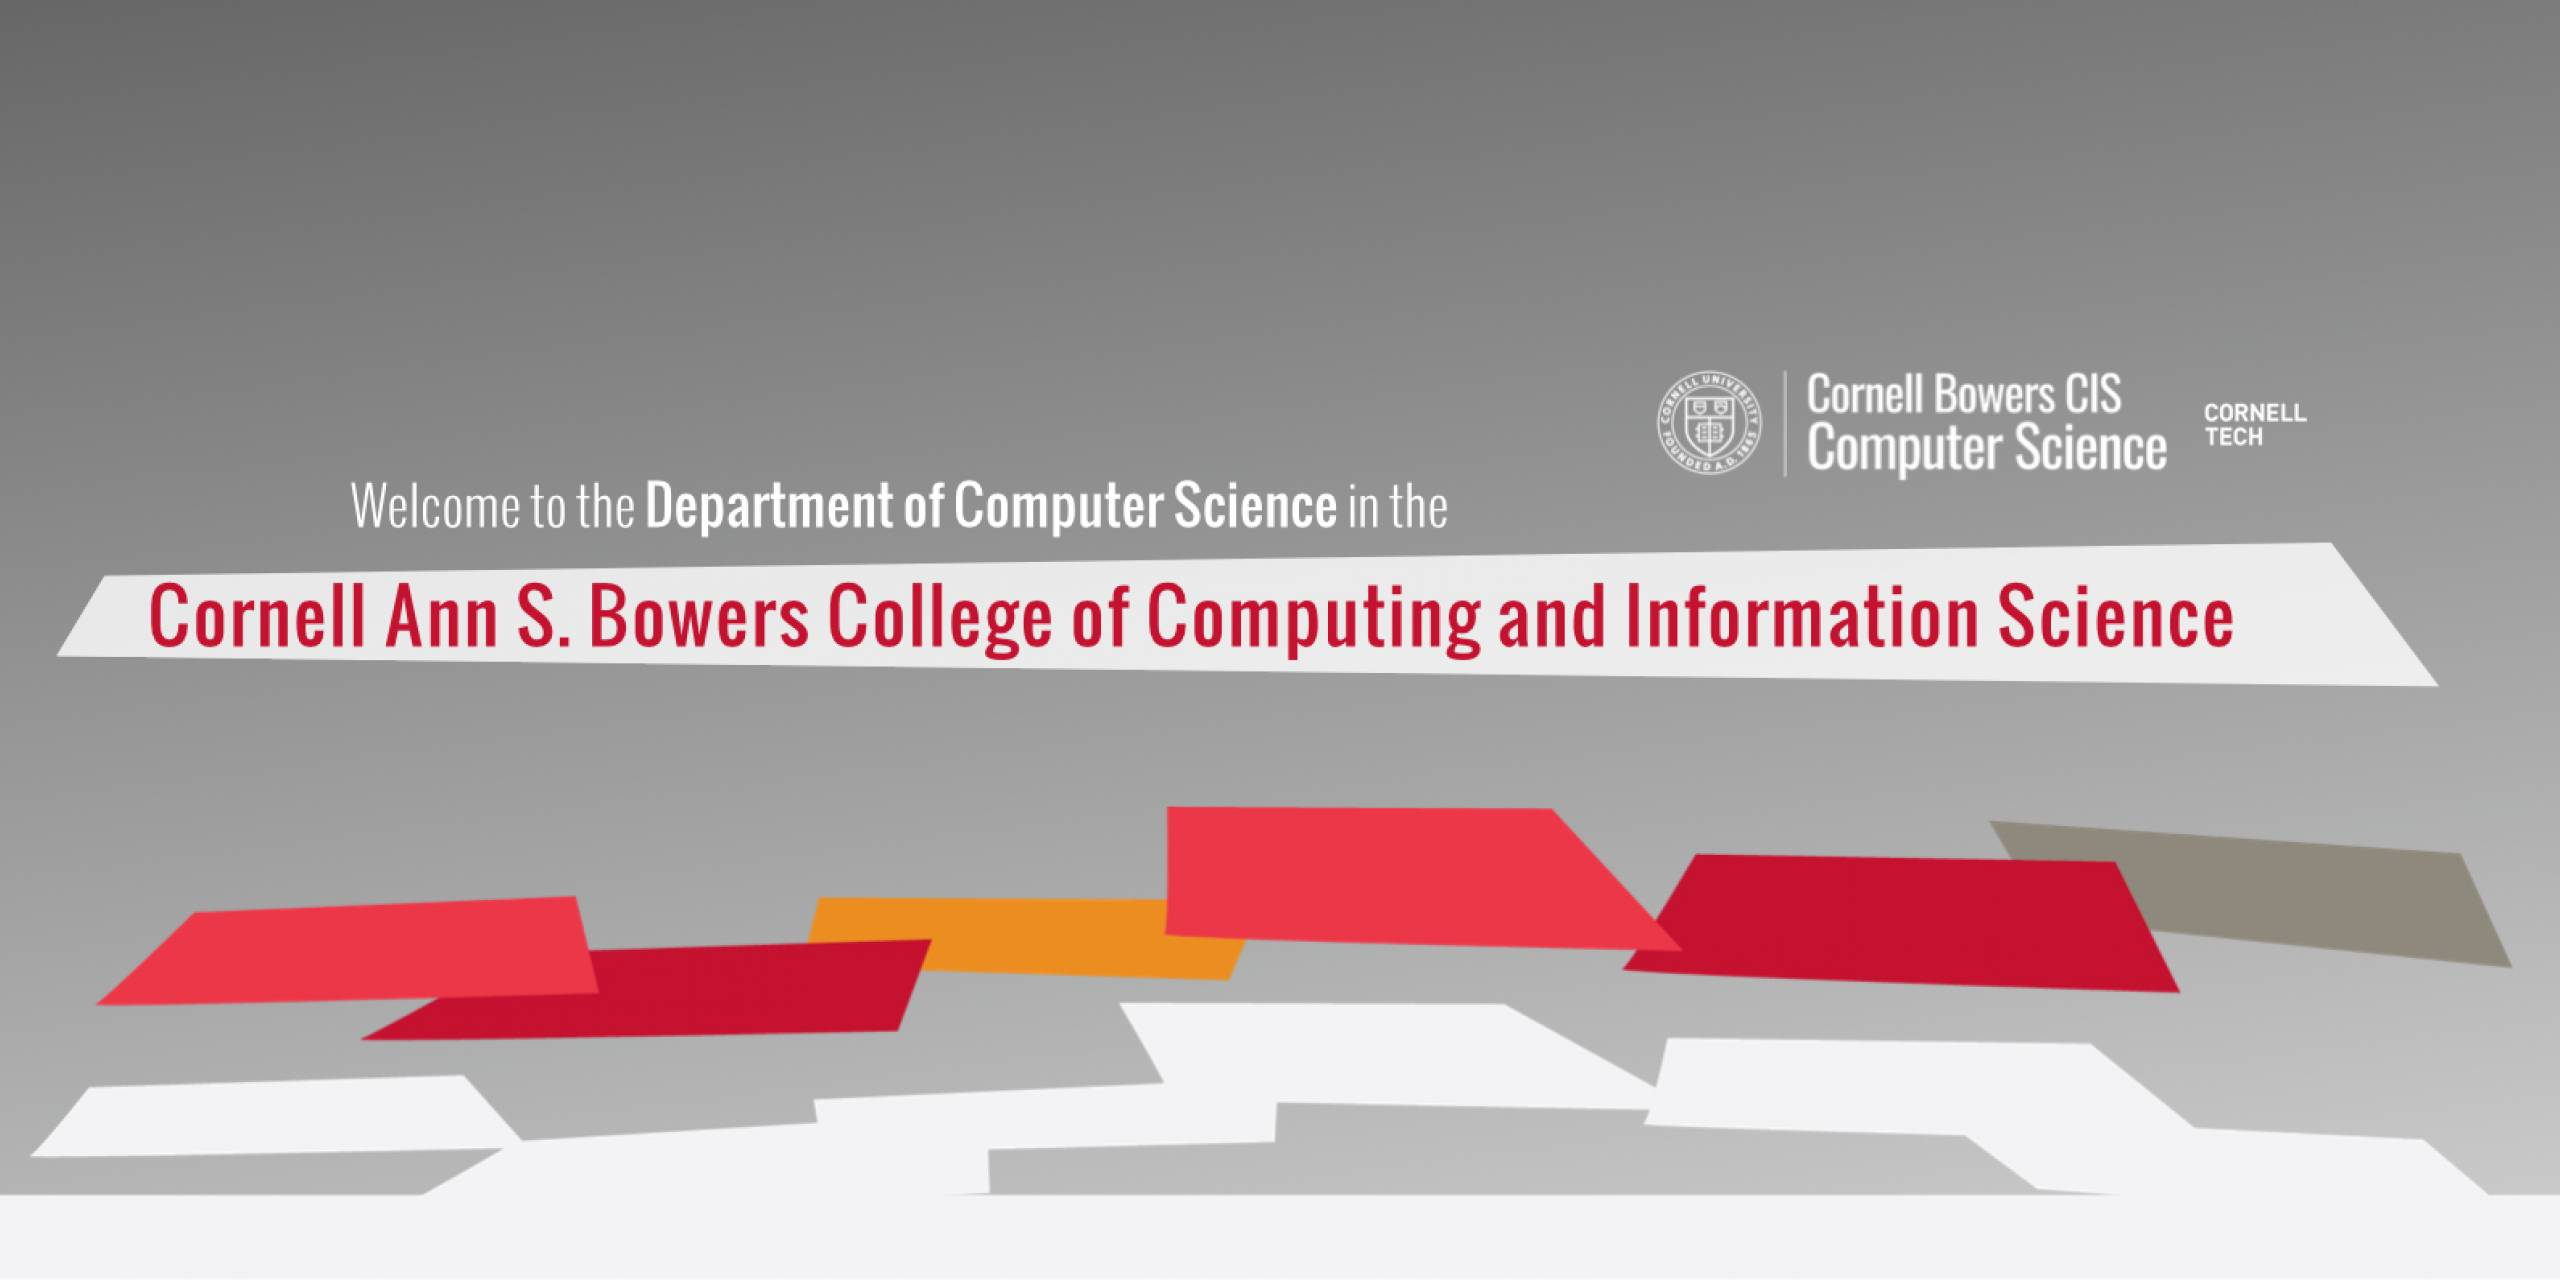 Welcome to the Department of Computer Science in Cornell Bowers CIS